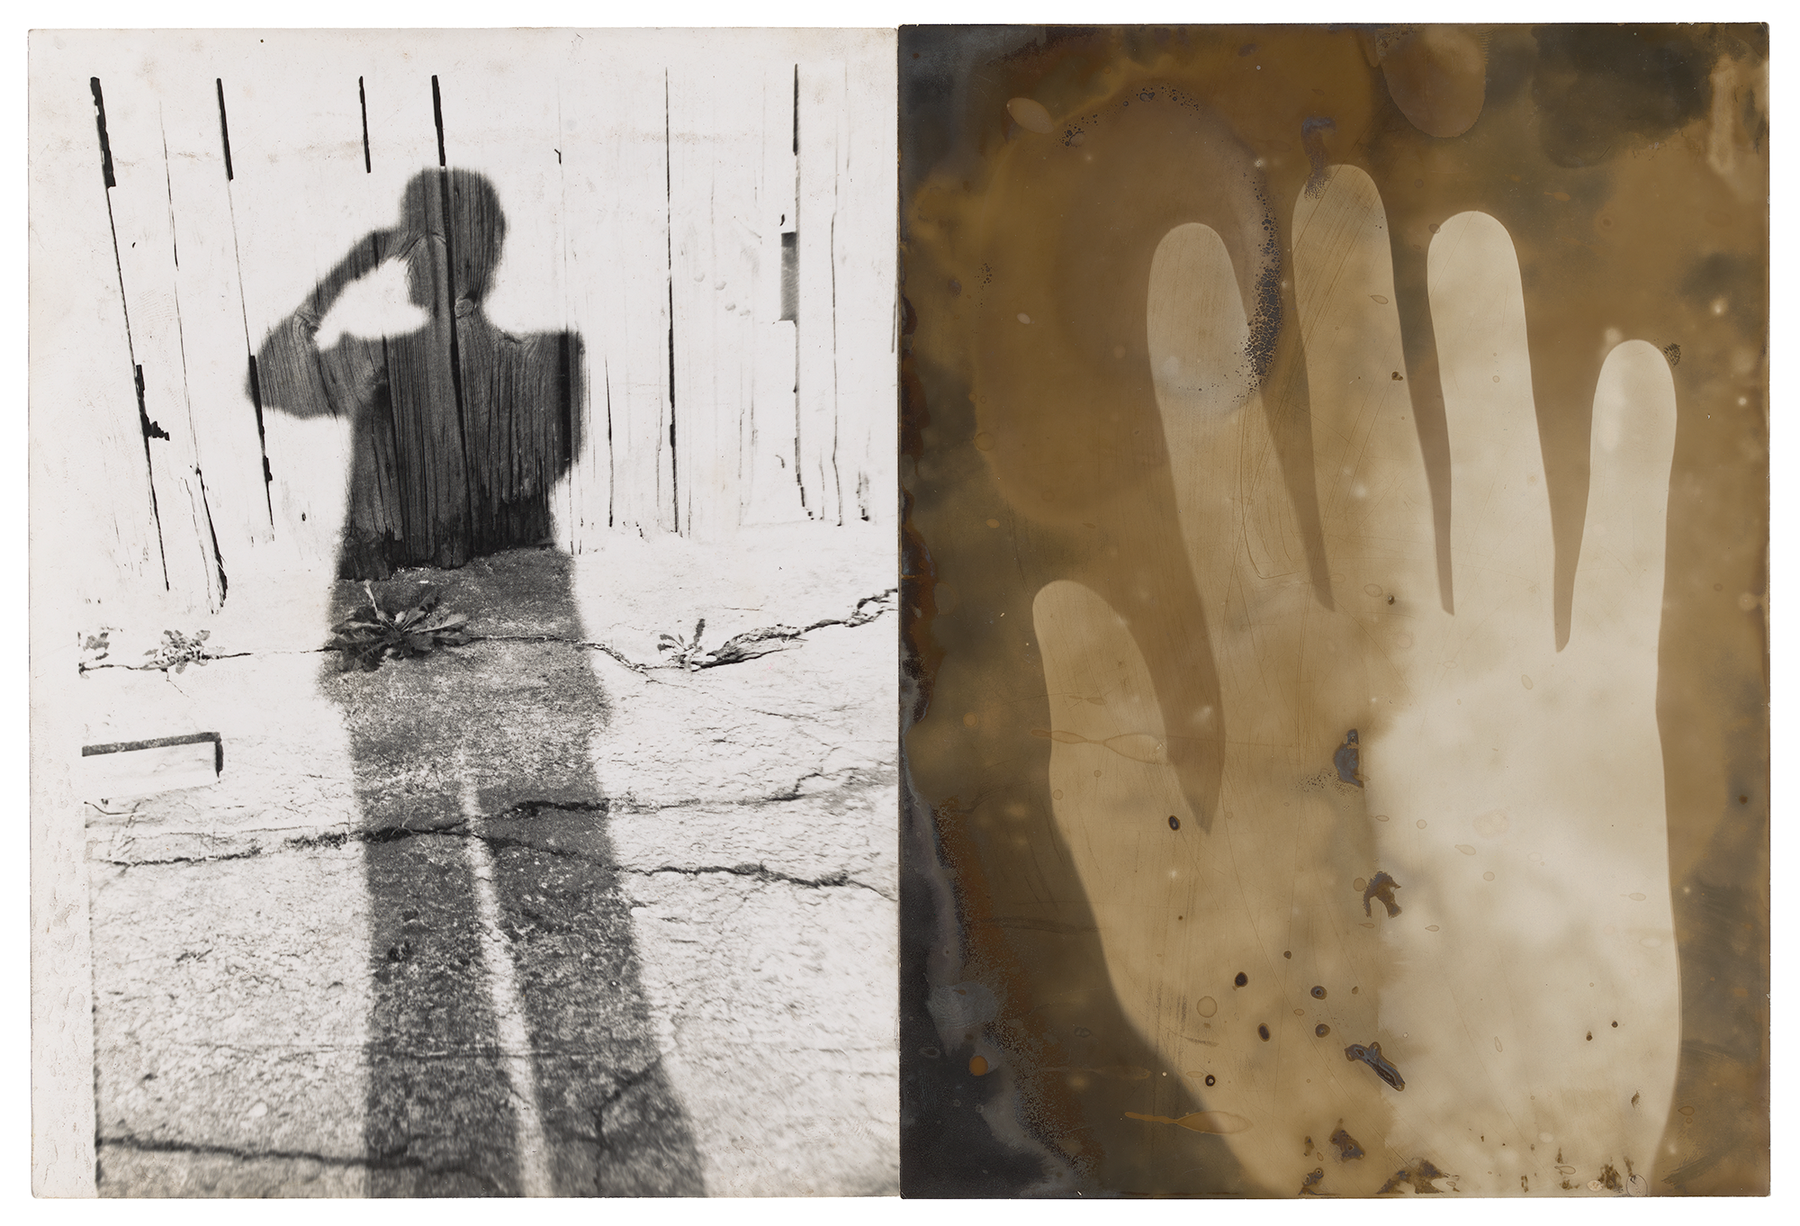 a shadow of a man and a hand